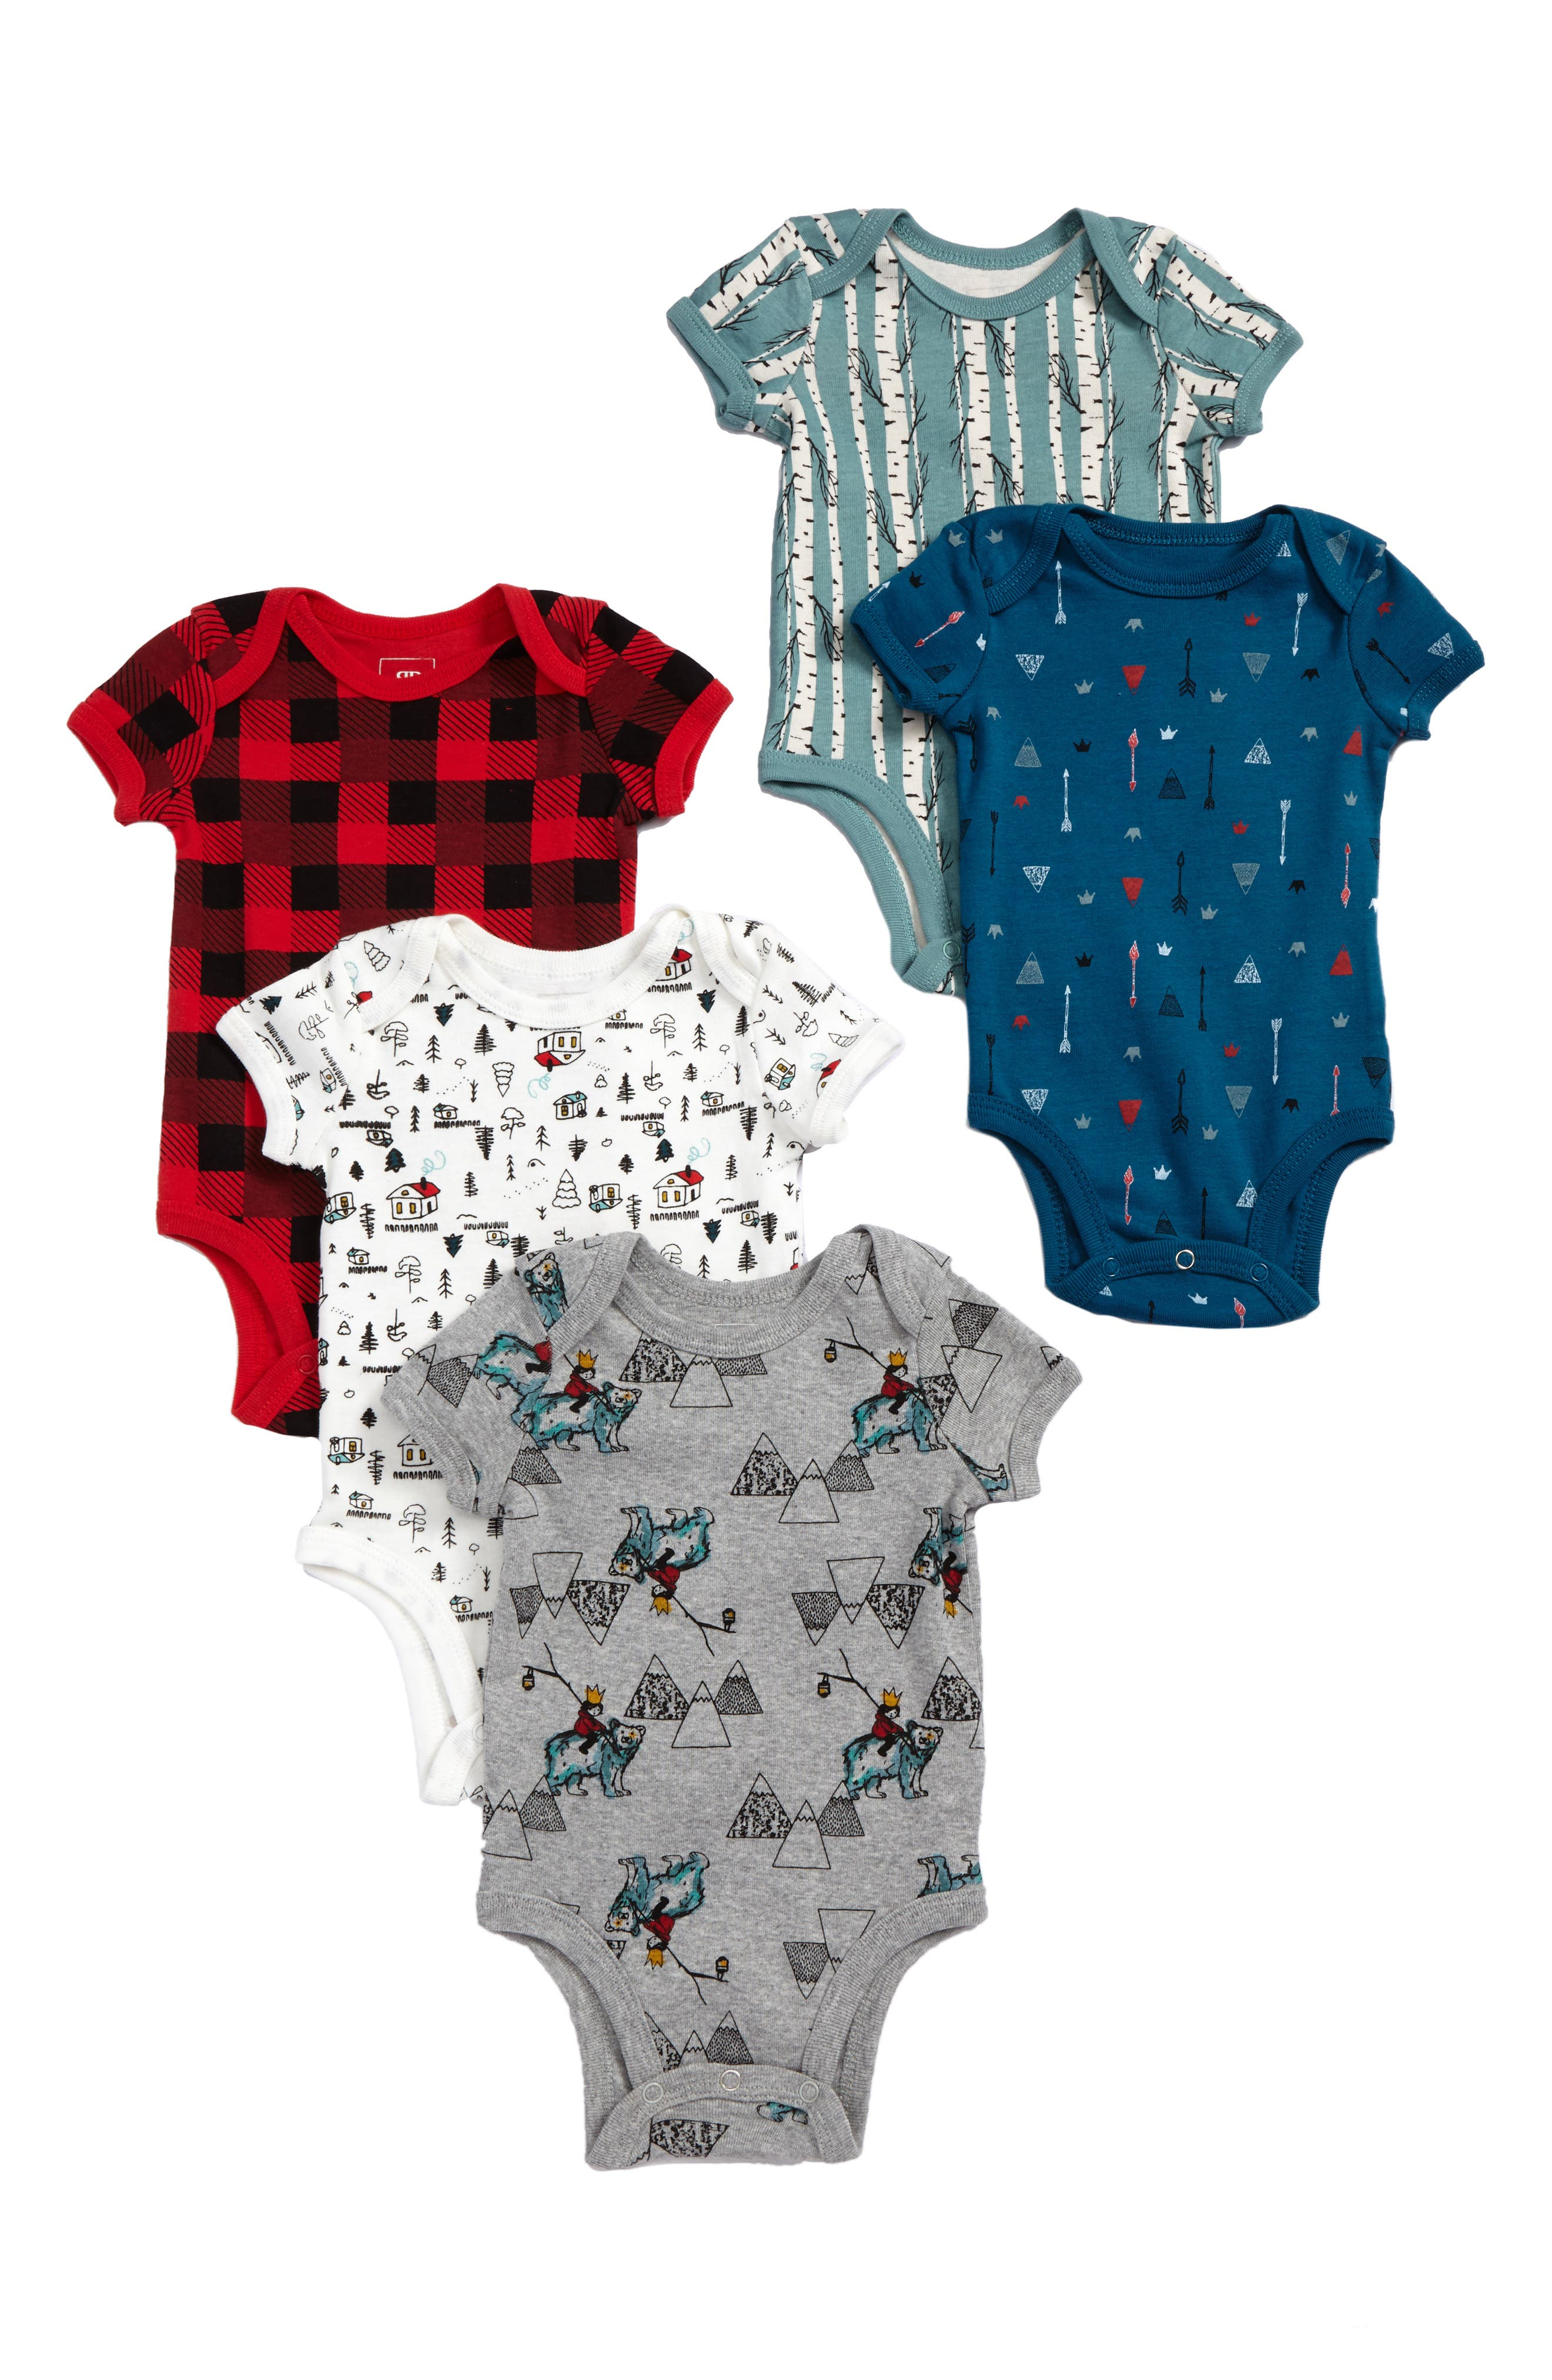 Rosie Pope 5-Pack Bodysuits (Baby Boys)